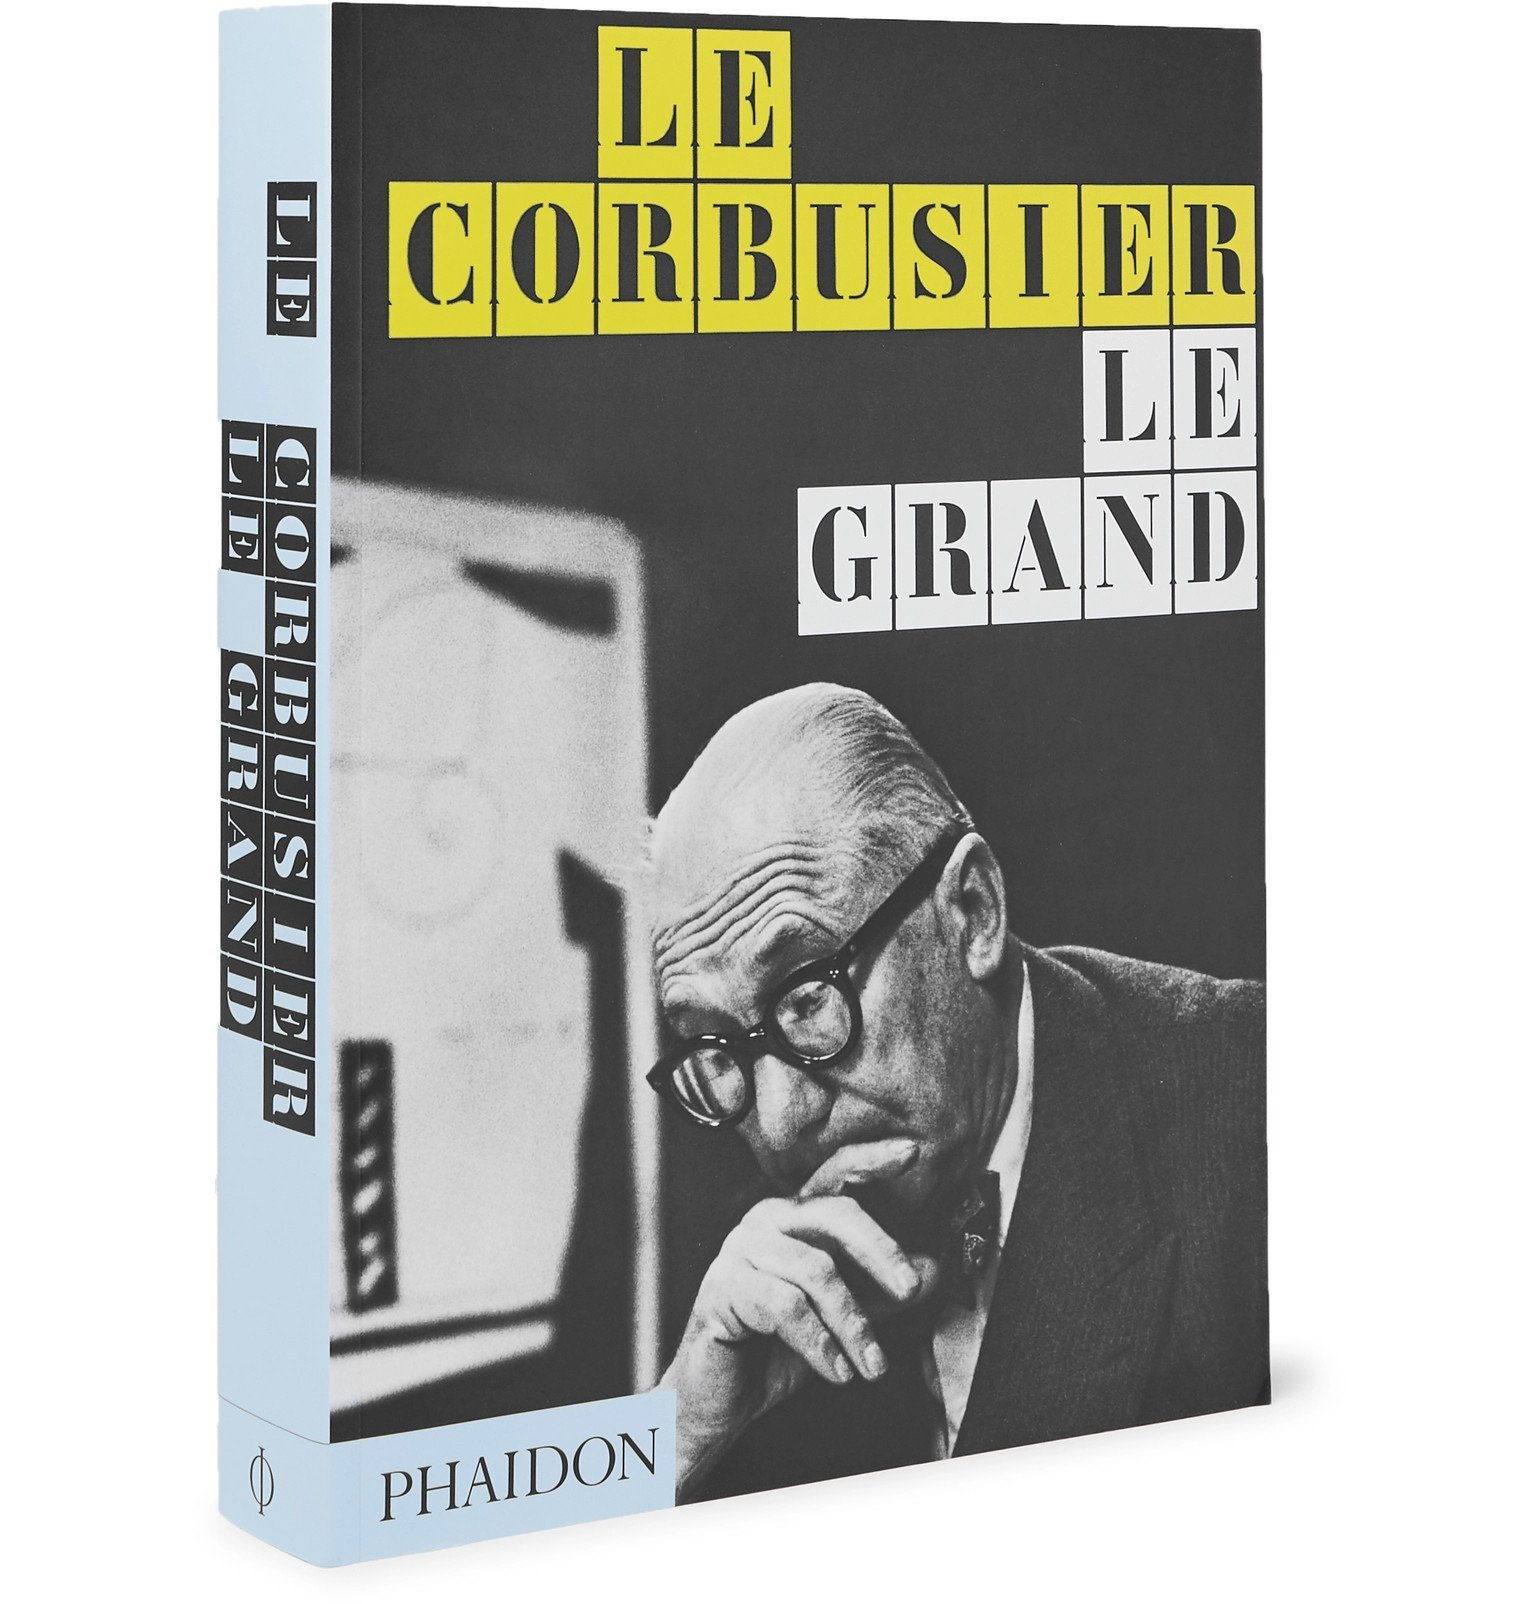 Photo: Phaidon - Le Corbusier Le Grand Paperback Book - Black